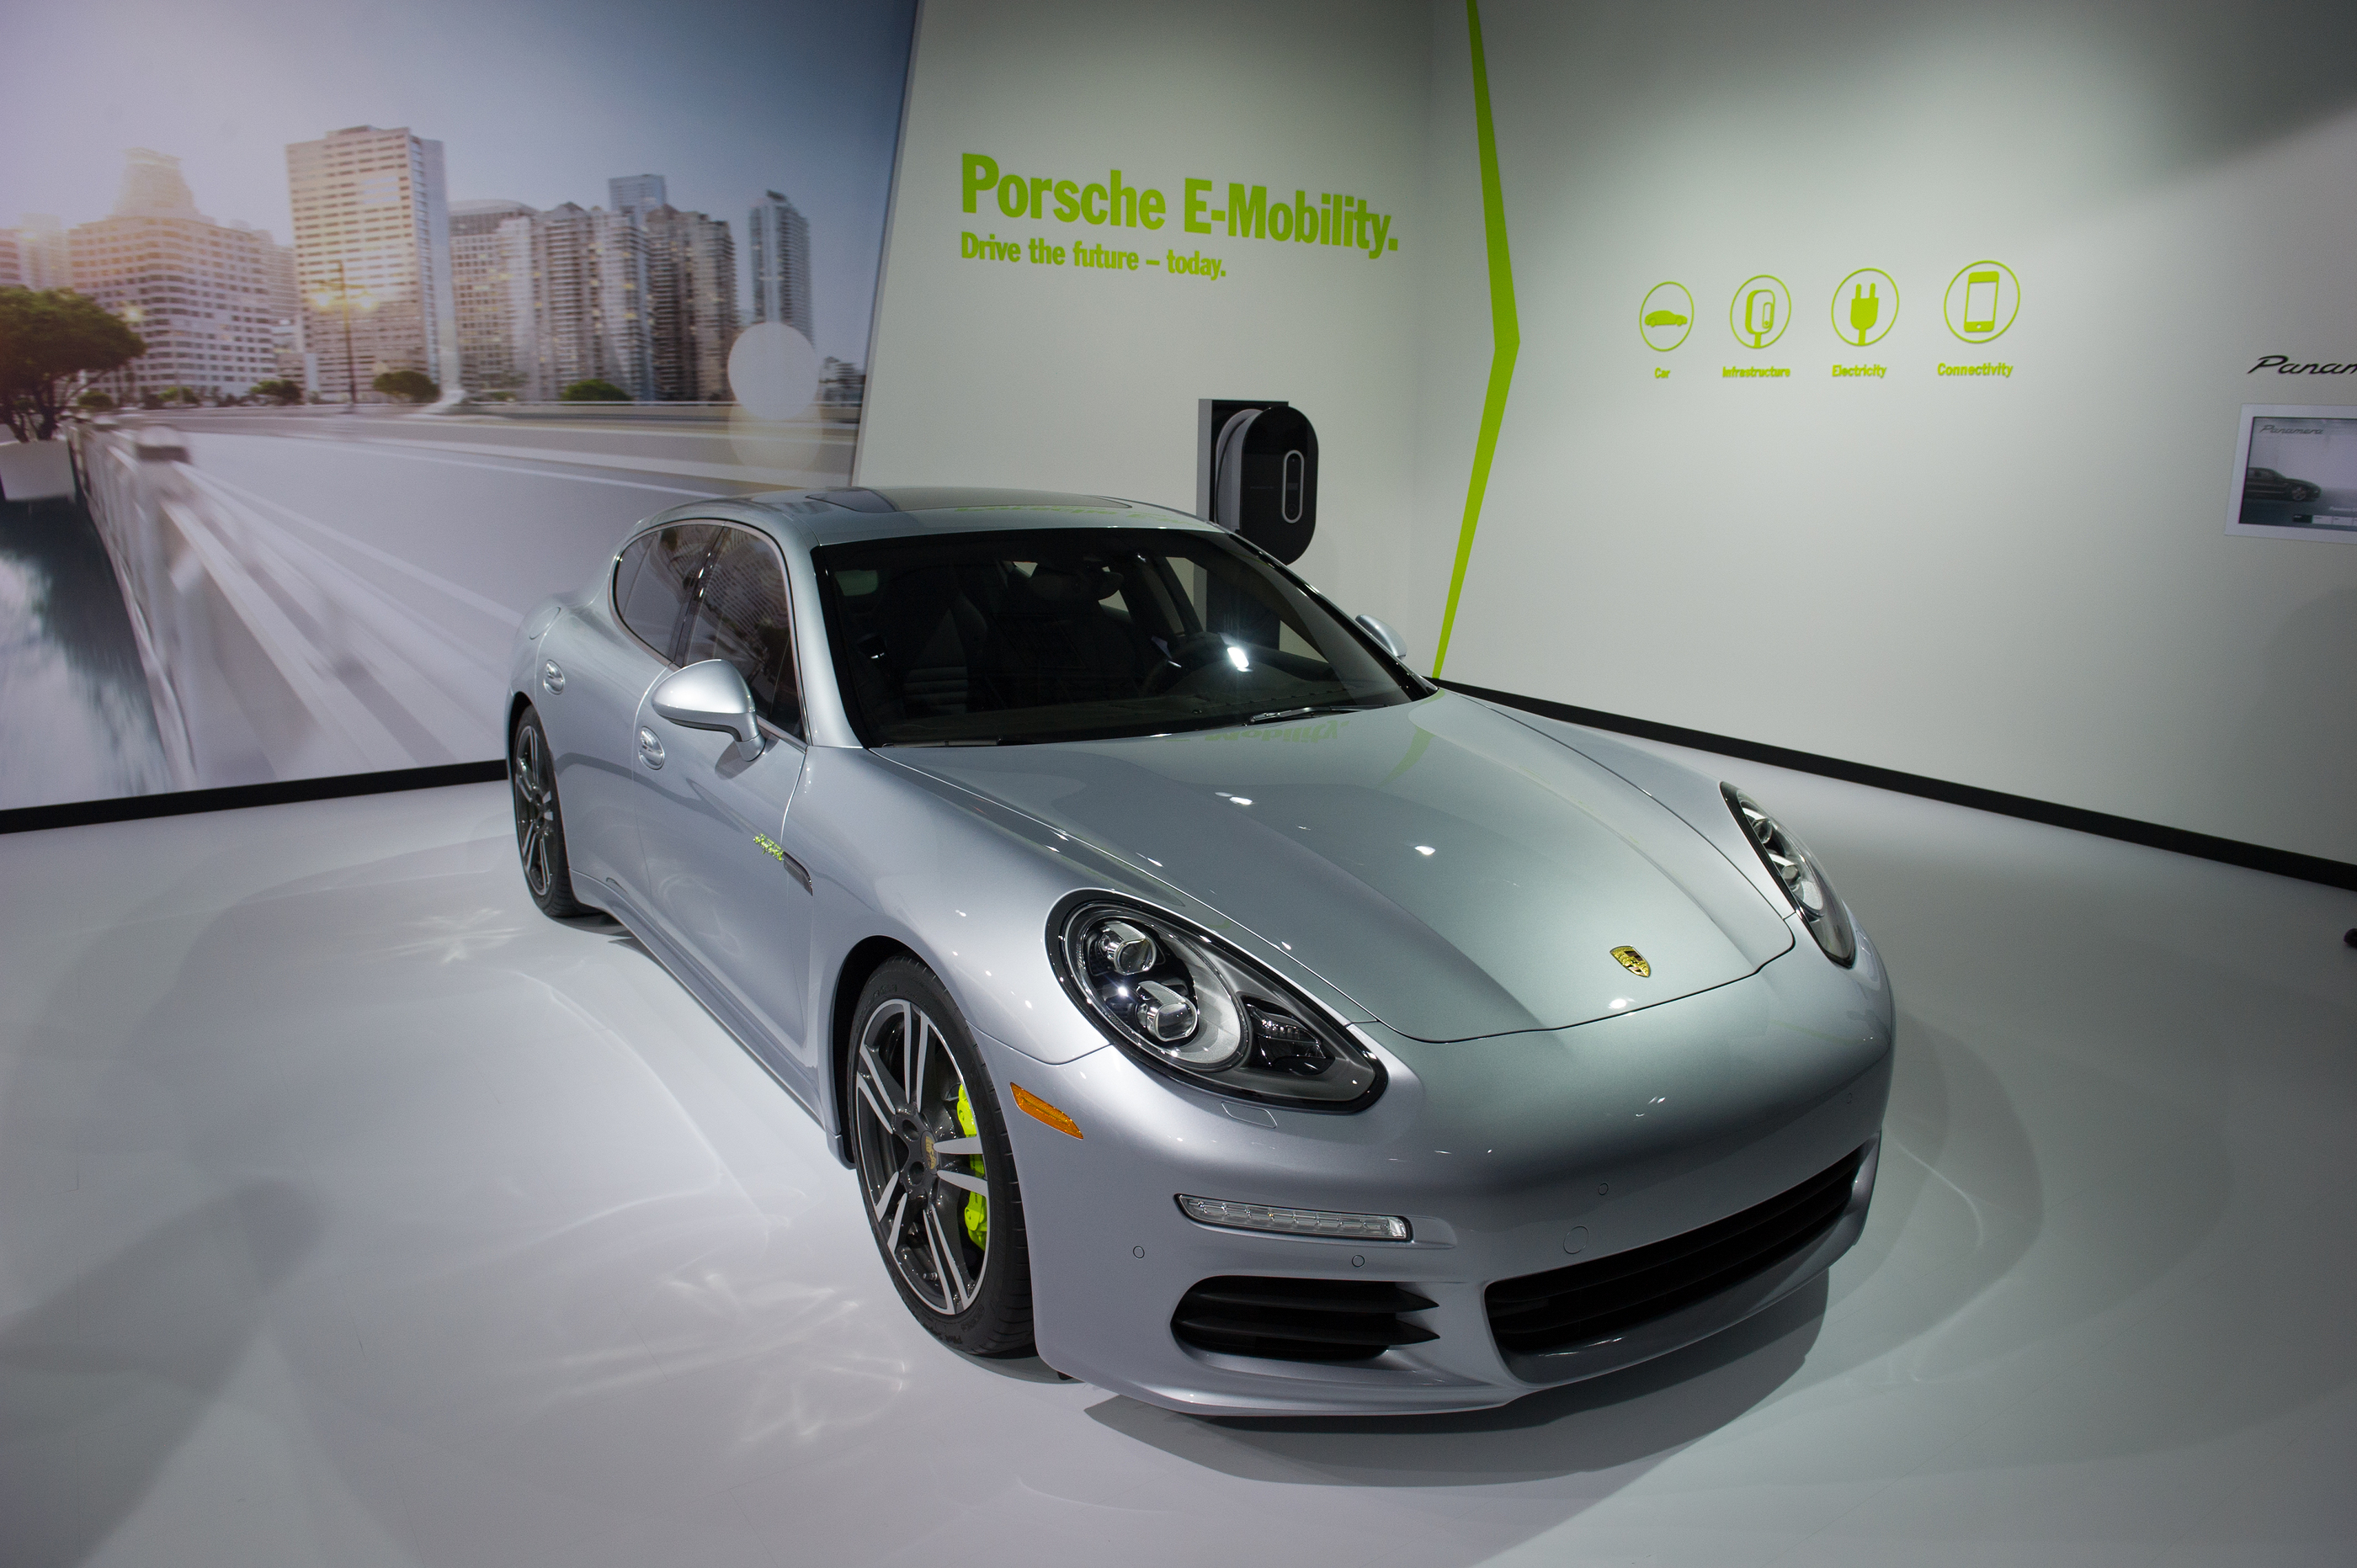 LOS ANGELES, CA - NOVEMBER 20: A PORSCHE PANAMERA S ON EXHIBIT AT THE LOS ANGELES AUTO SHOW IN LOS ANGELES, CA ON NOVEMBER 20, 2013 BY CHRISTOPHER HALLORAN